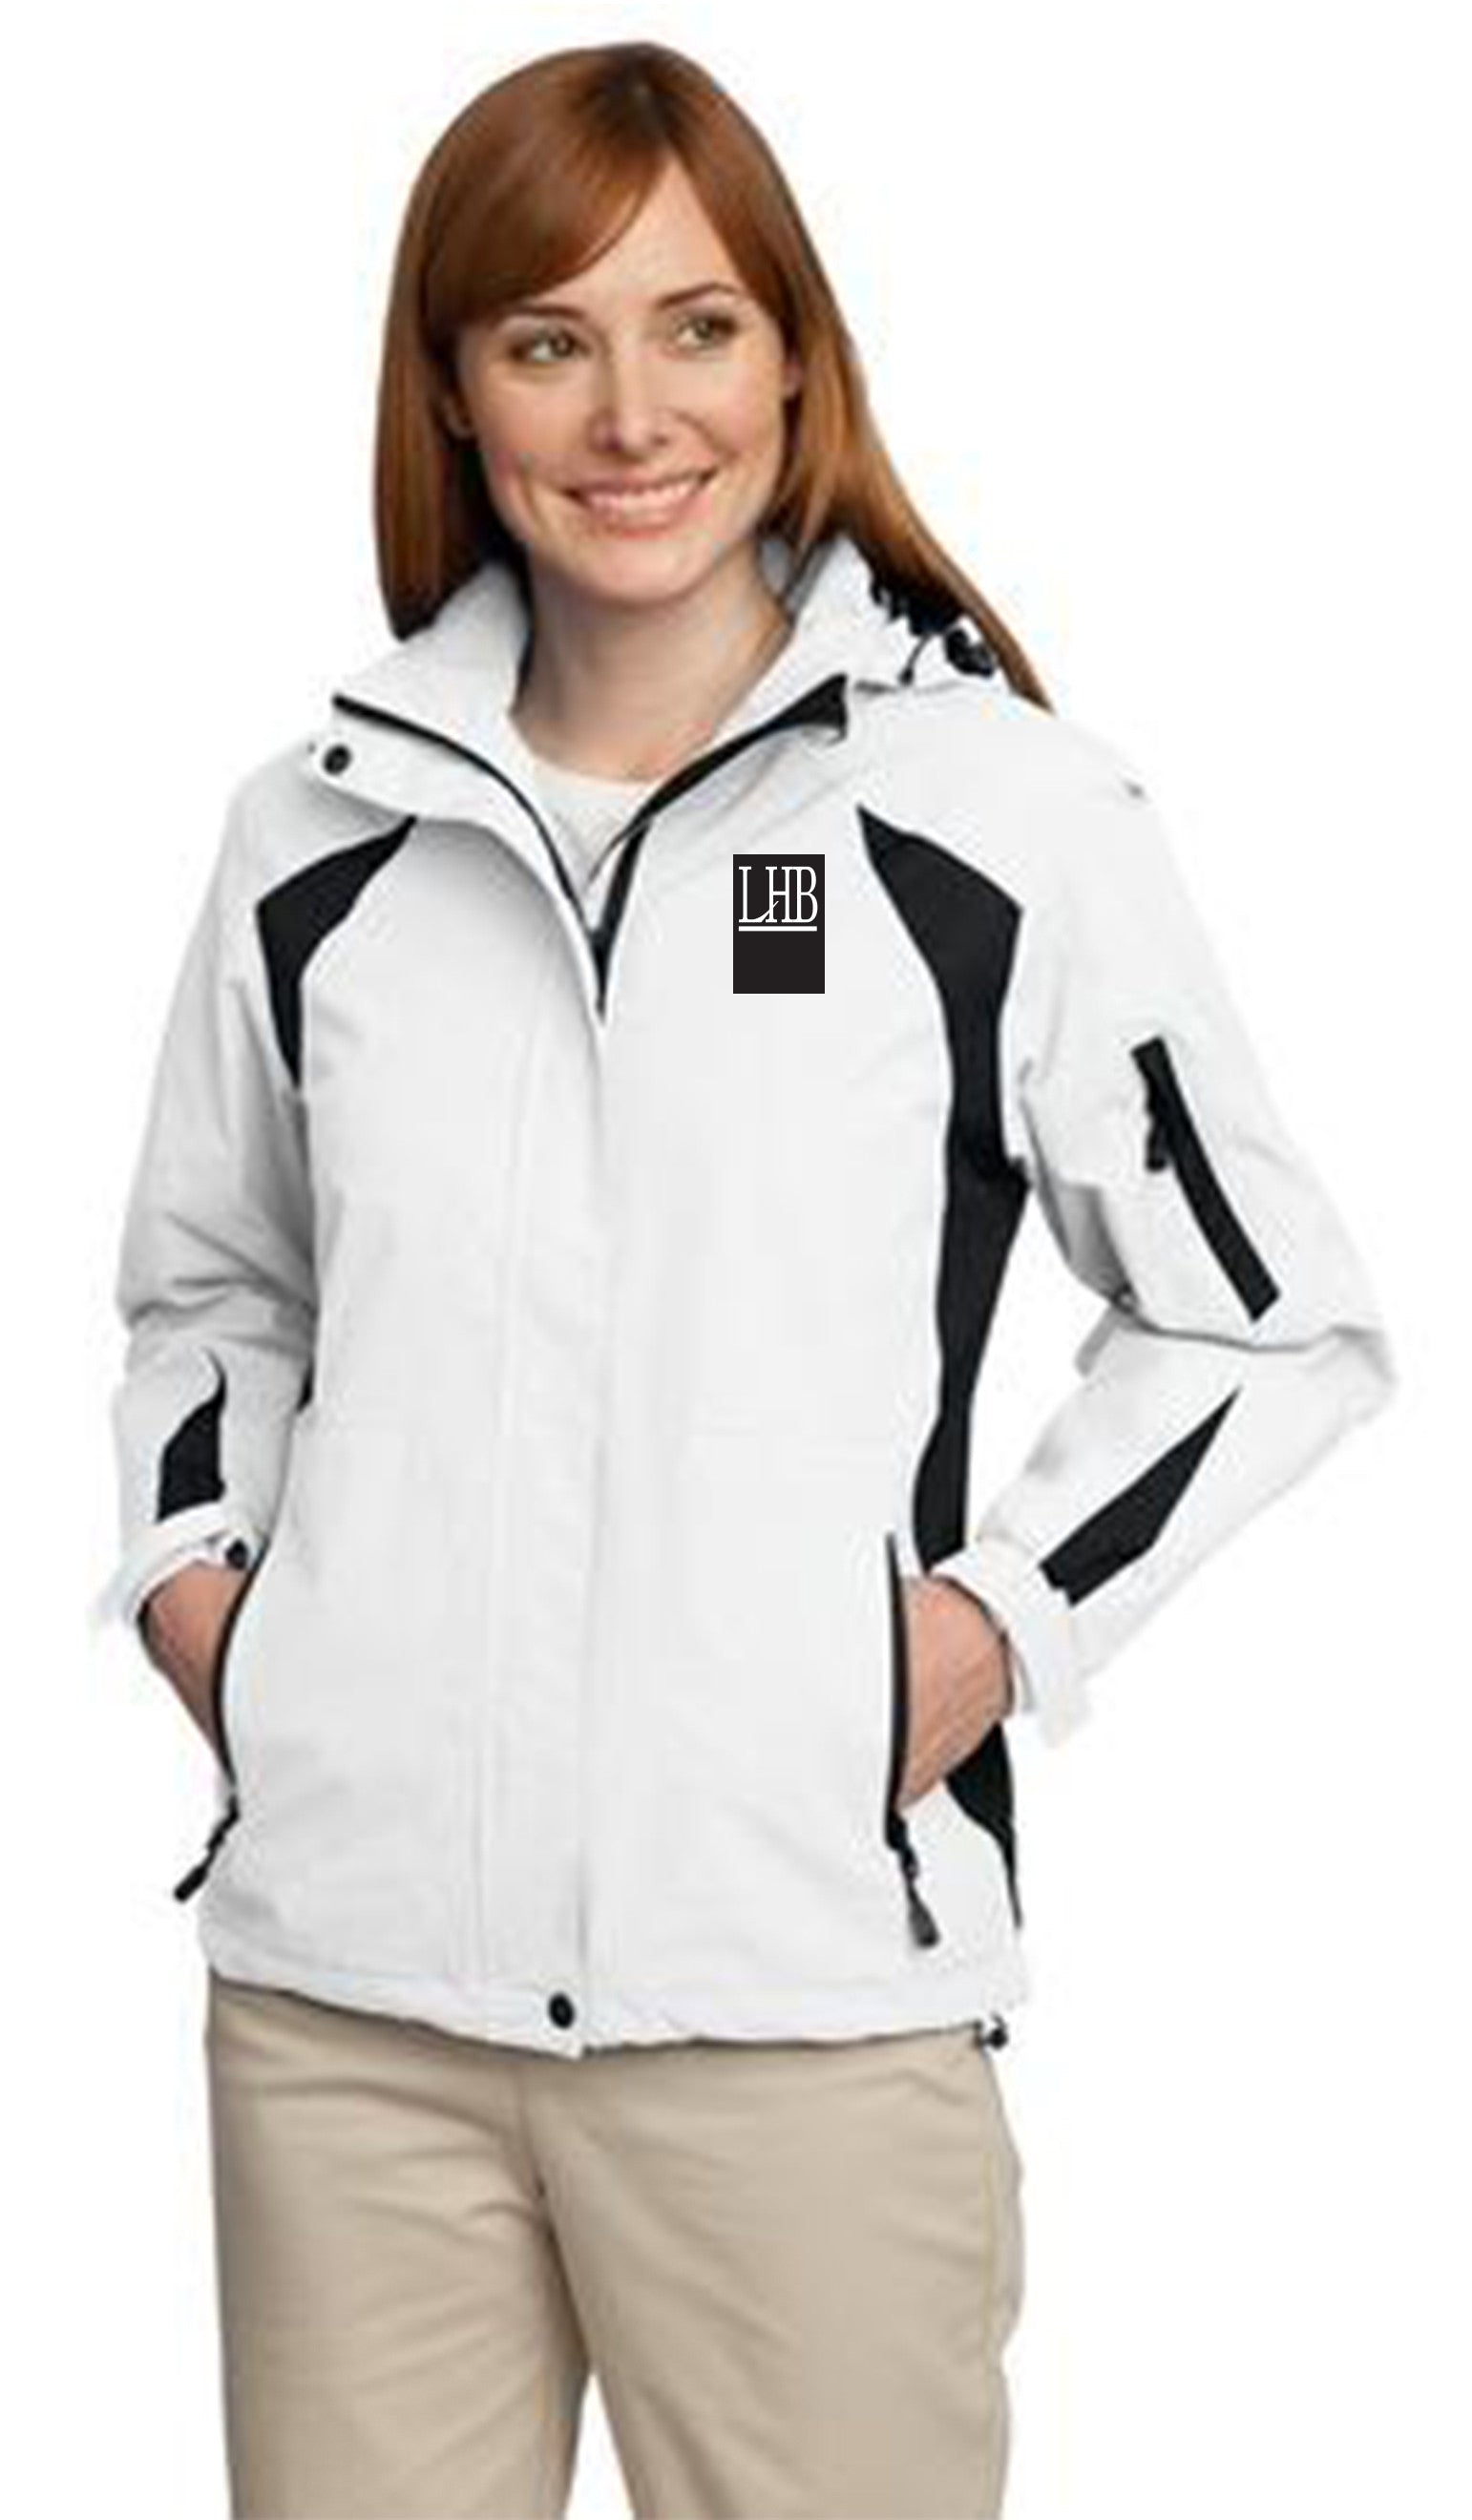 Port Authority® Ladies All-Season II Jacket - Ladies L304